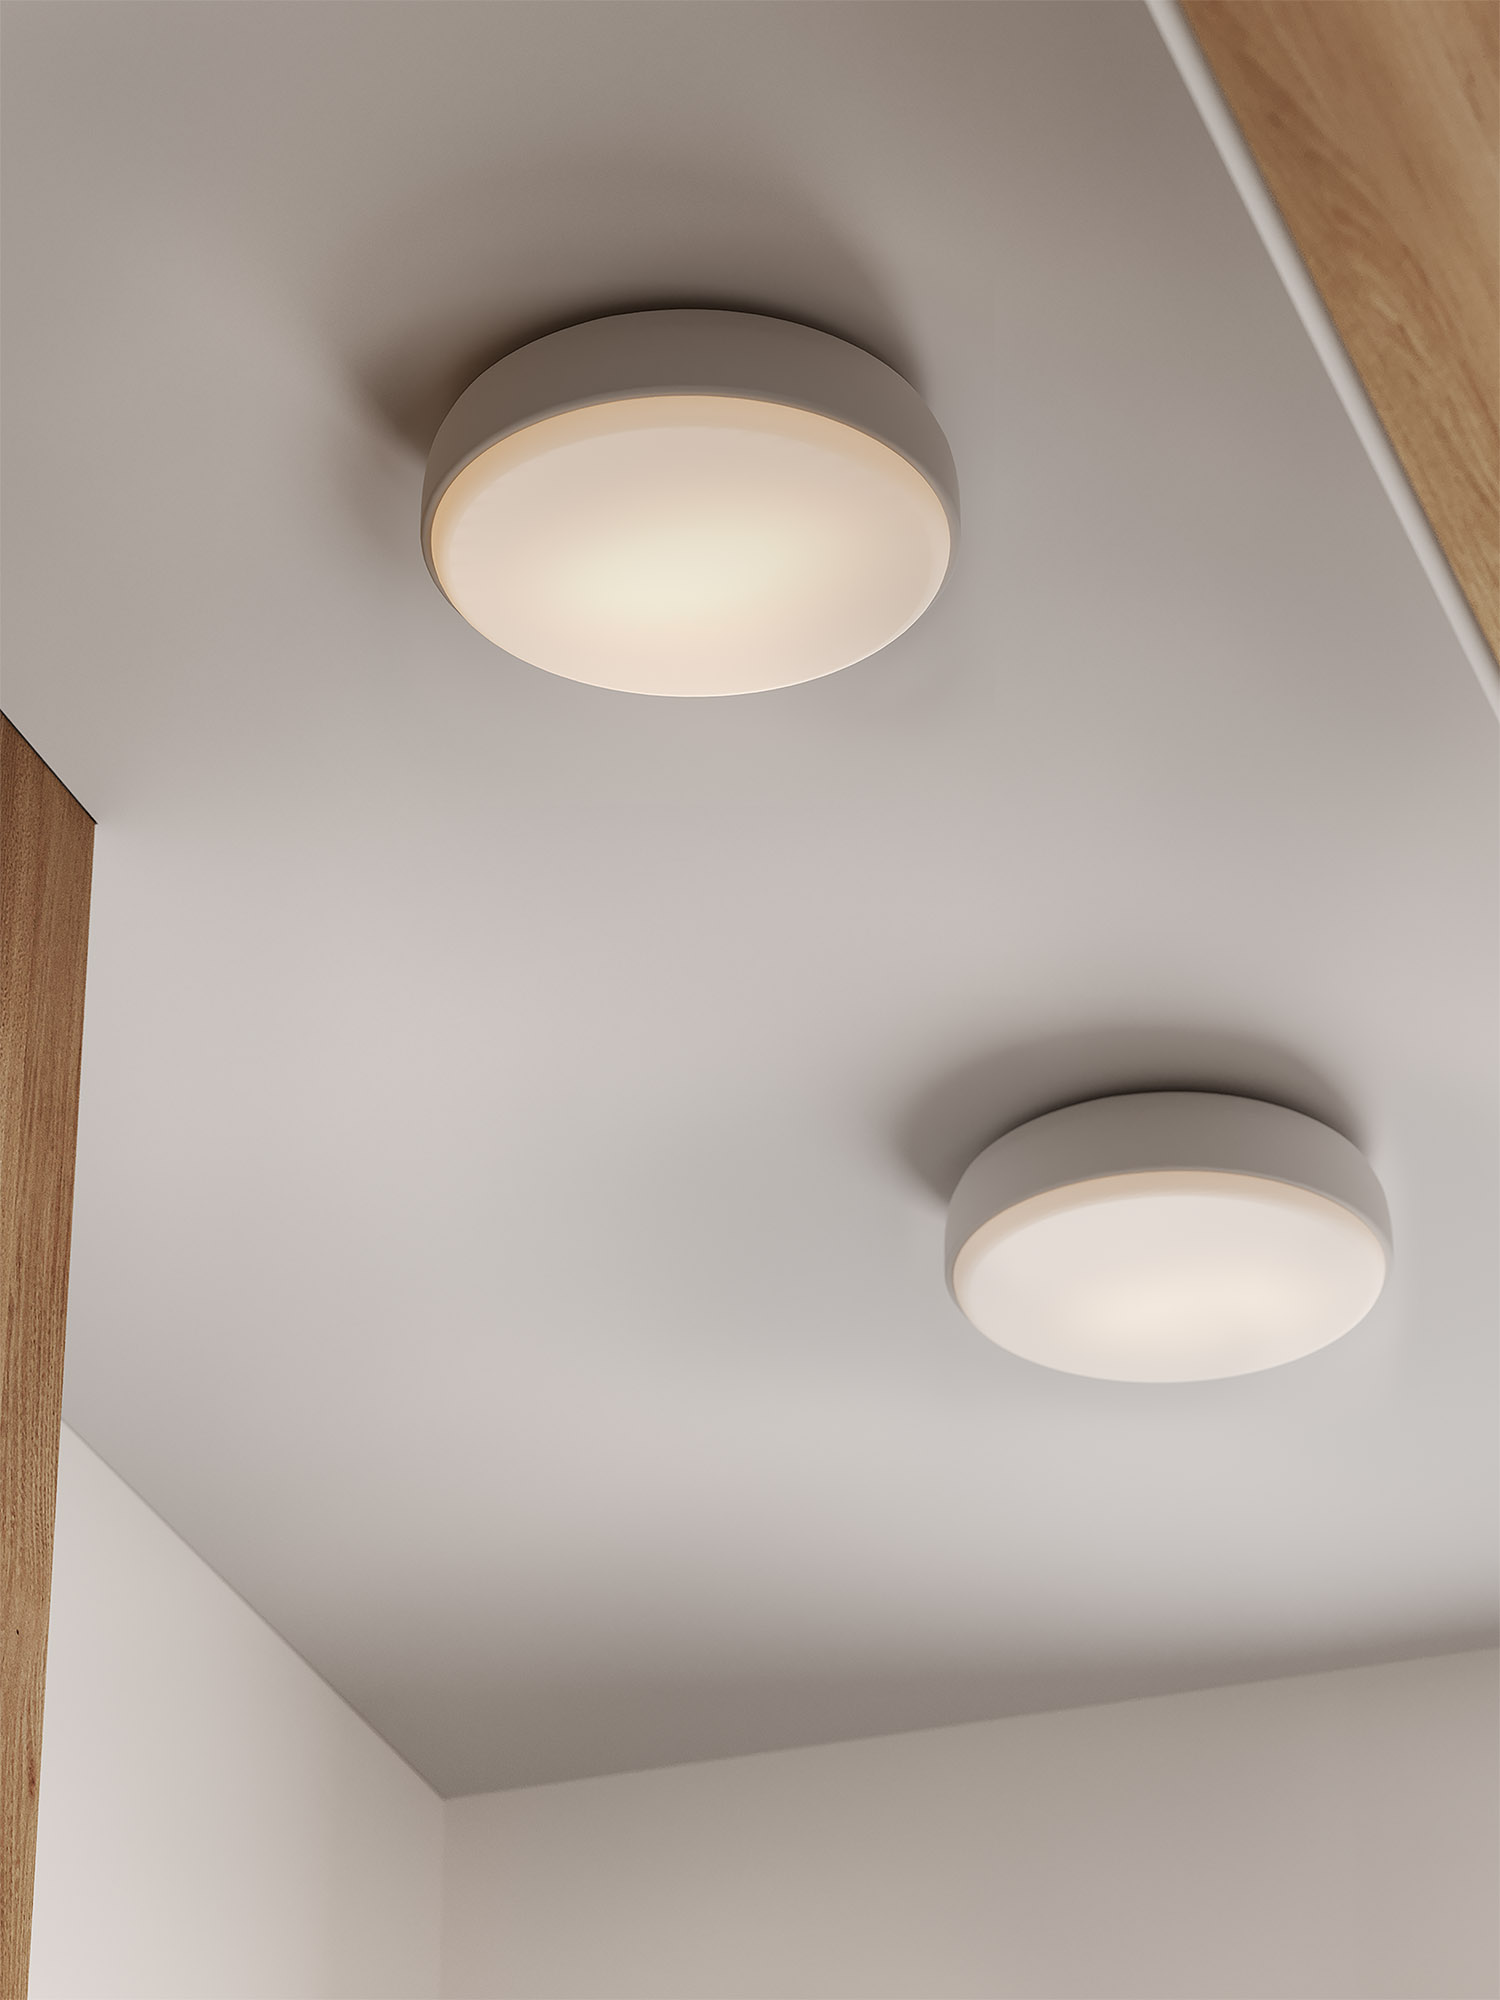 Over_Me_ceiling_lamps_white-50_Northern_Low-res